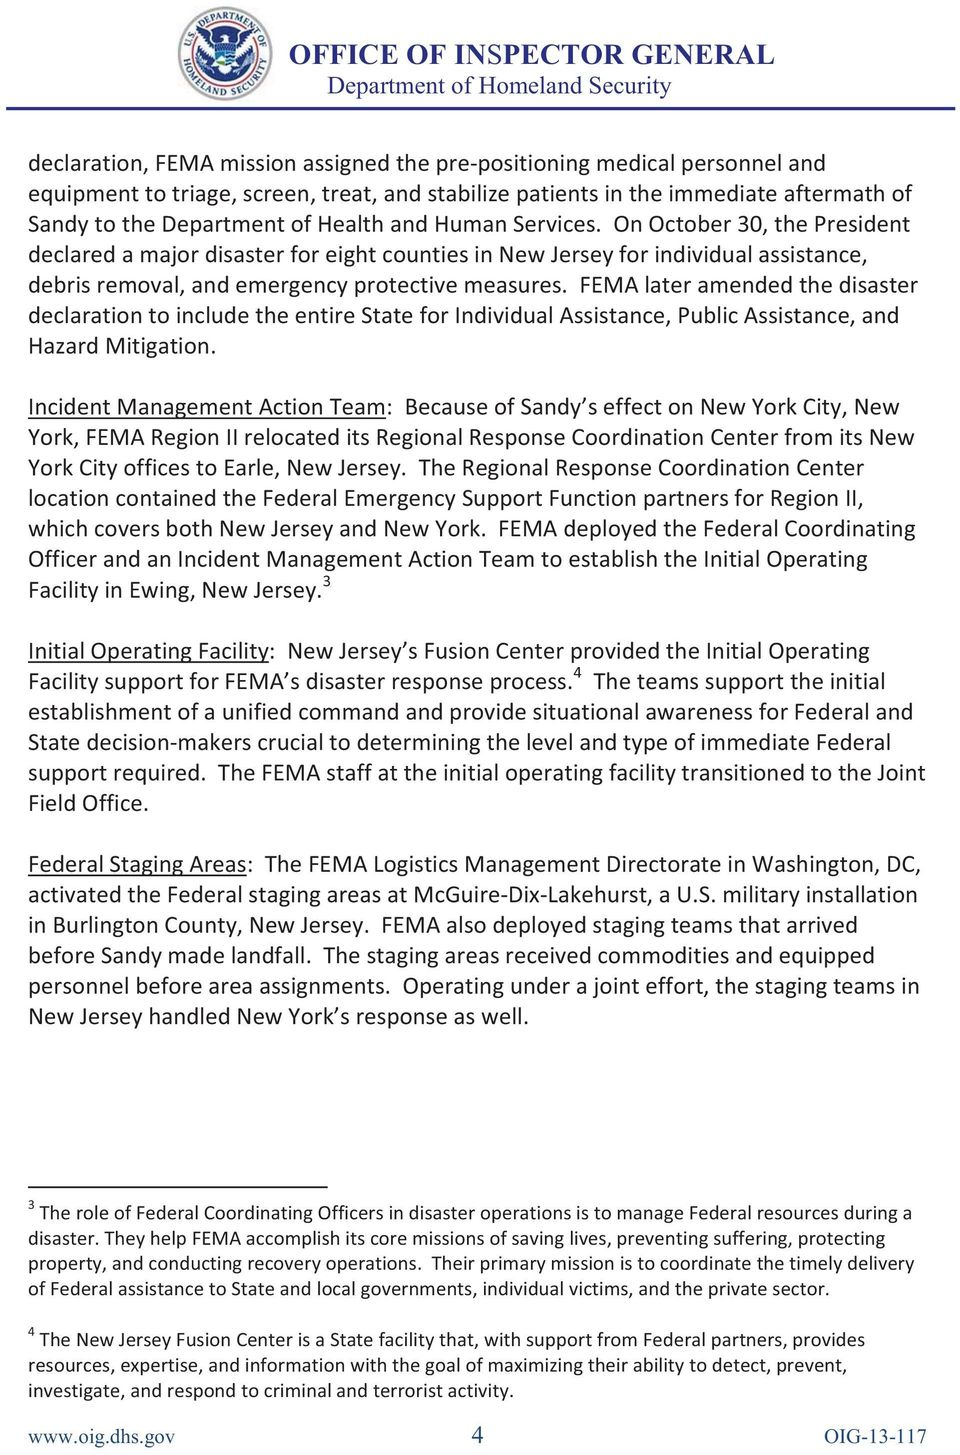 FEMA later amended the disaster declaration to include the entire State for Individual Assistance, Public Assistance, and Hazard Mitigation.